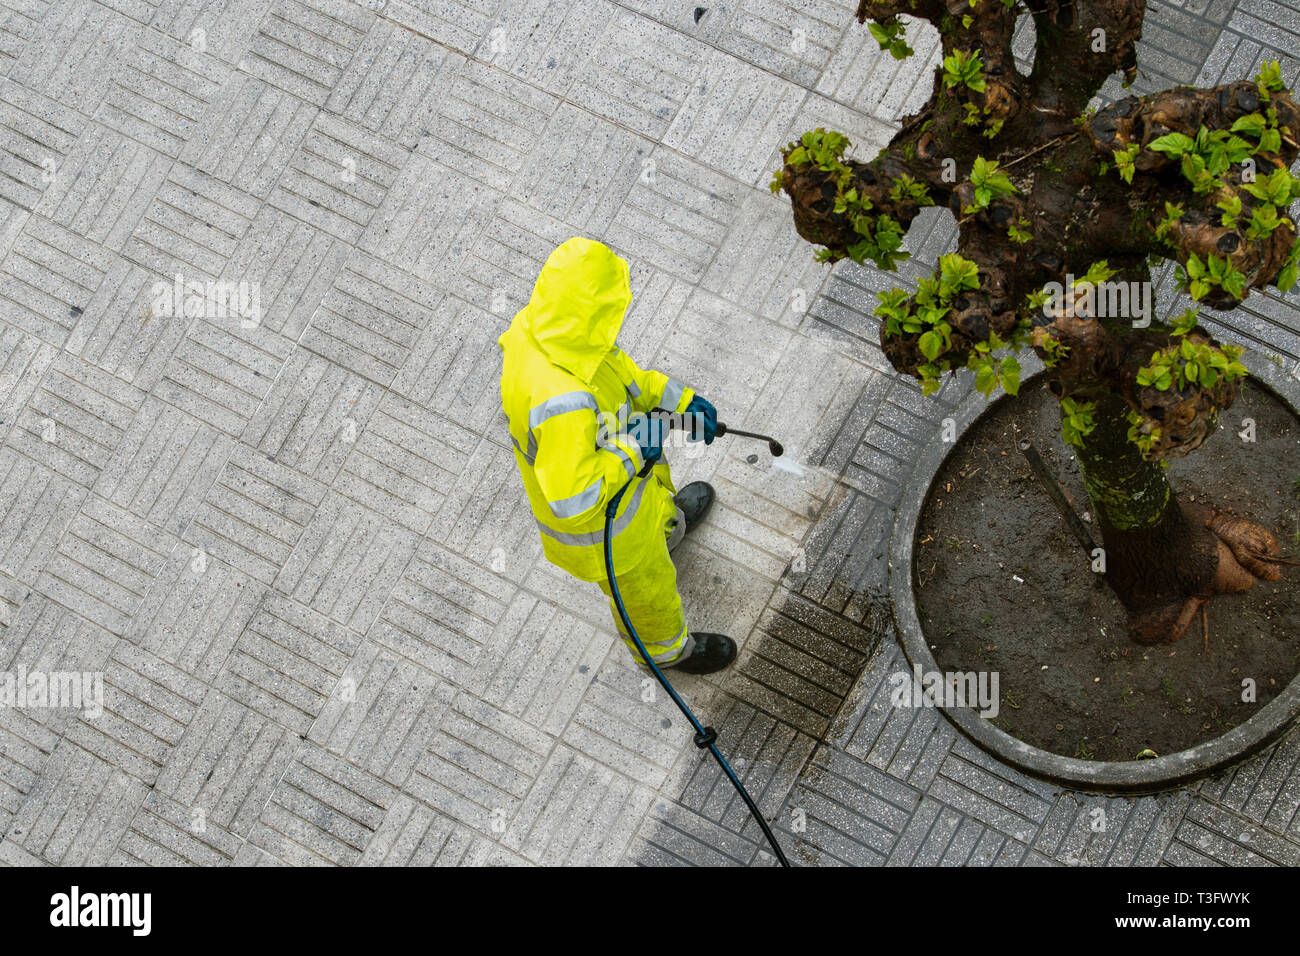 Top view of a Worker cleaning the street sidewalk with high pressure water jet. Public maintenance concept - Stock Image